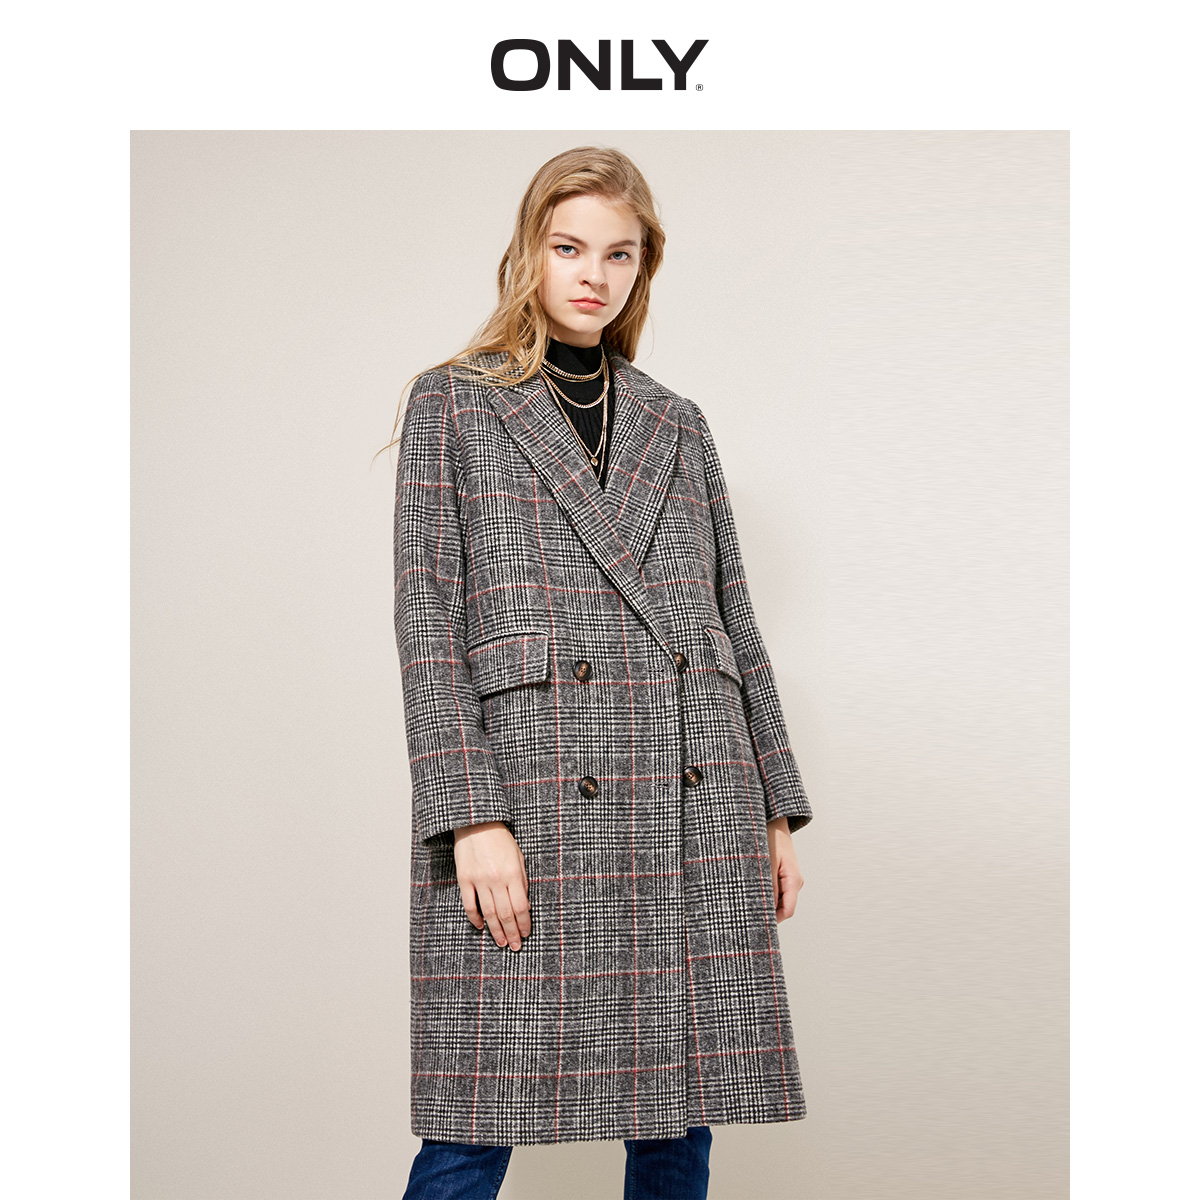 ONLY Women's Winter New Retro Double-breasted Double-breasted Long Woolen Coat | 118427501